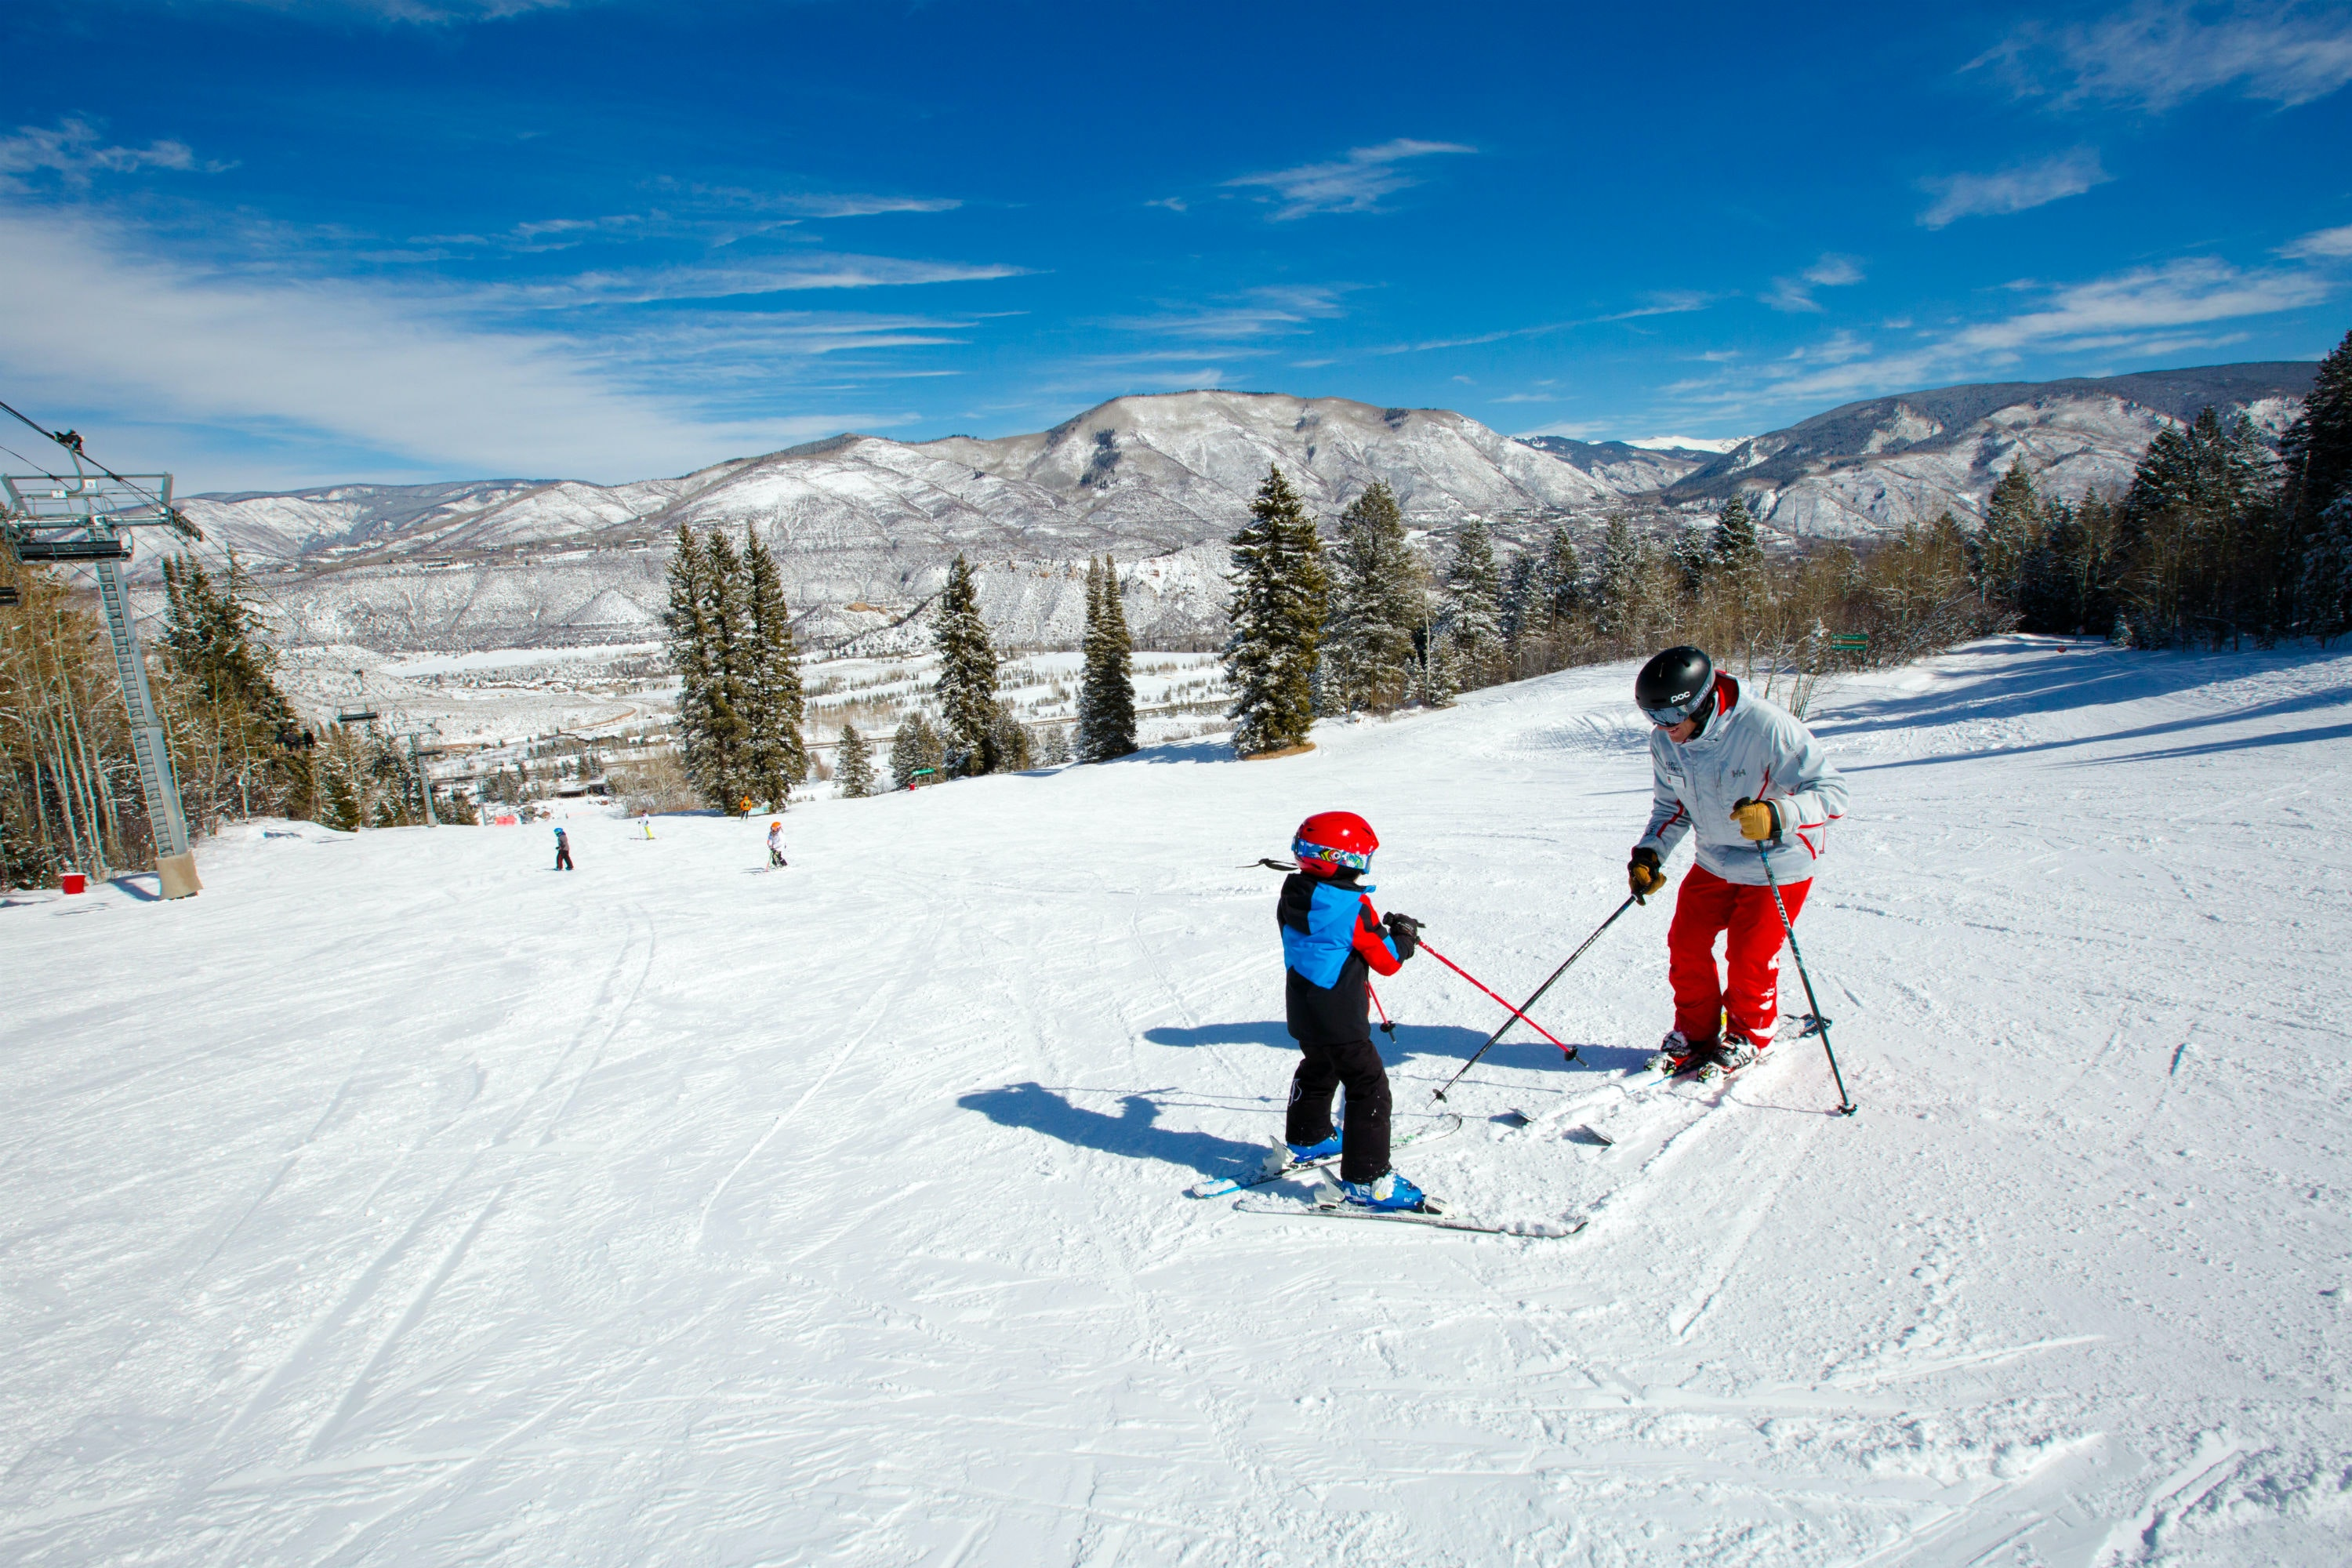 Full-day ski lessons for kids leave parents free to hit the black runs—or the hotel bars.